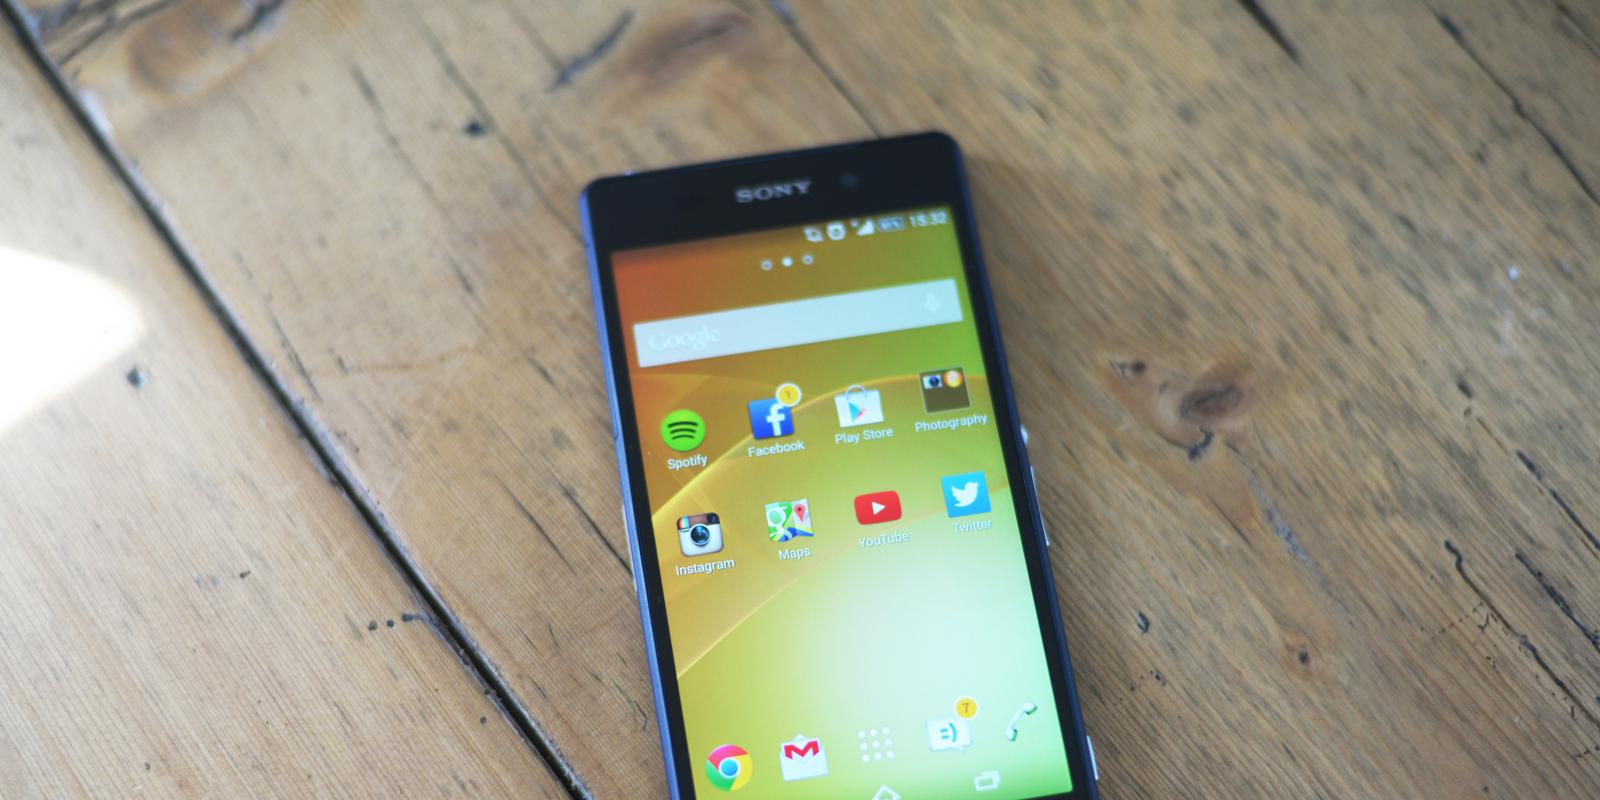 Sony Xperia Z2 Review Things Get Much Better The Second Time Round Z3 Compact Seken